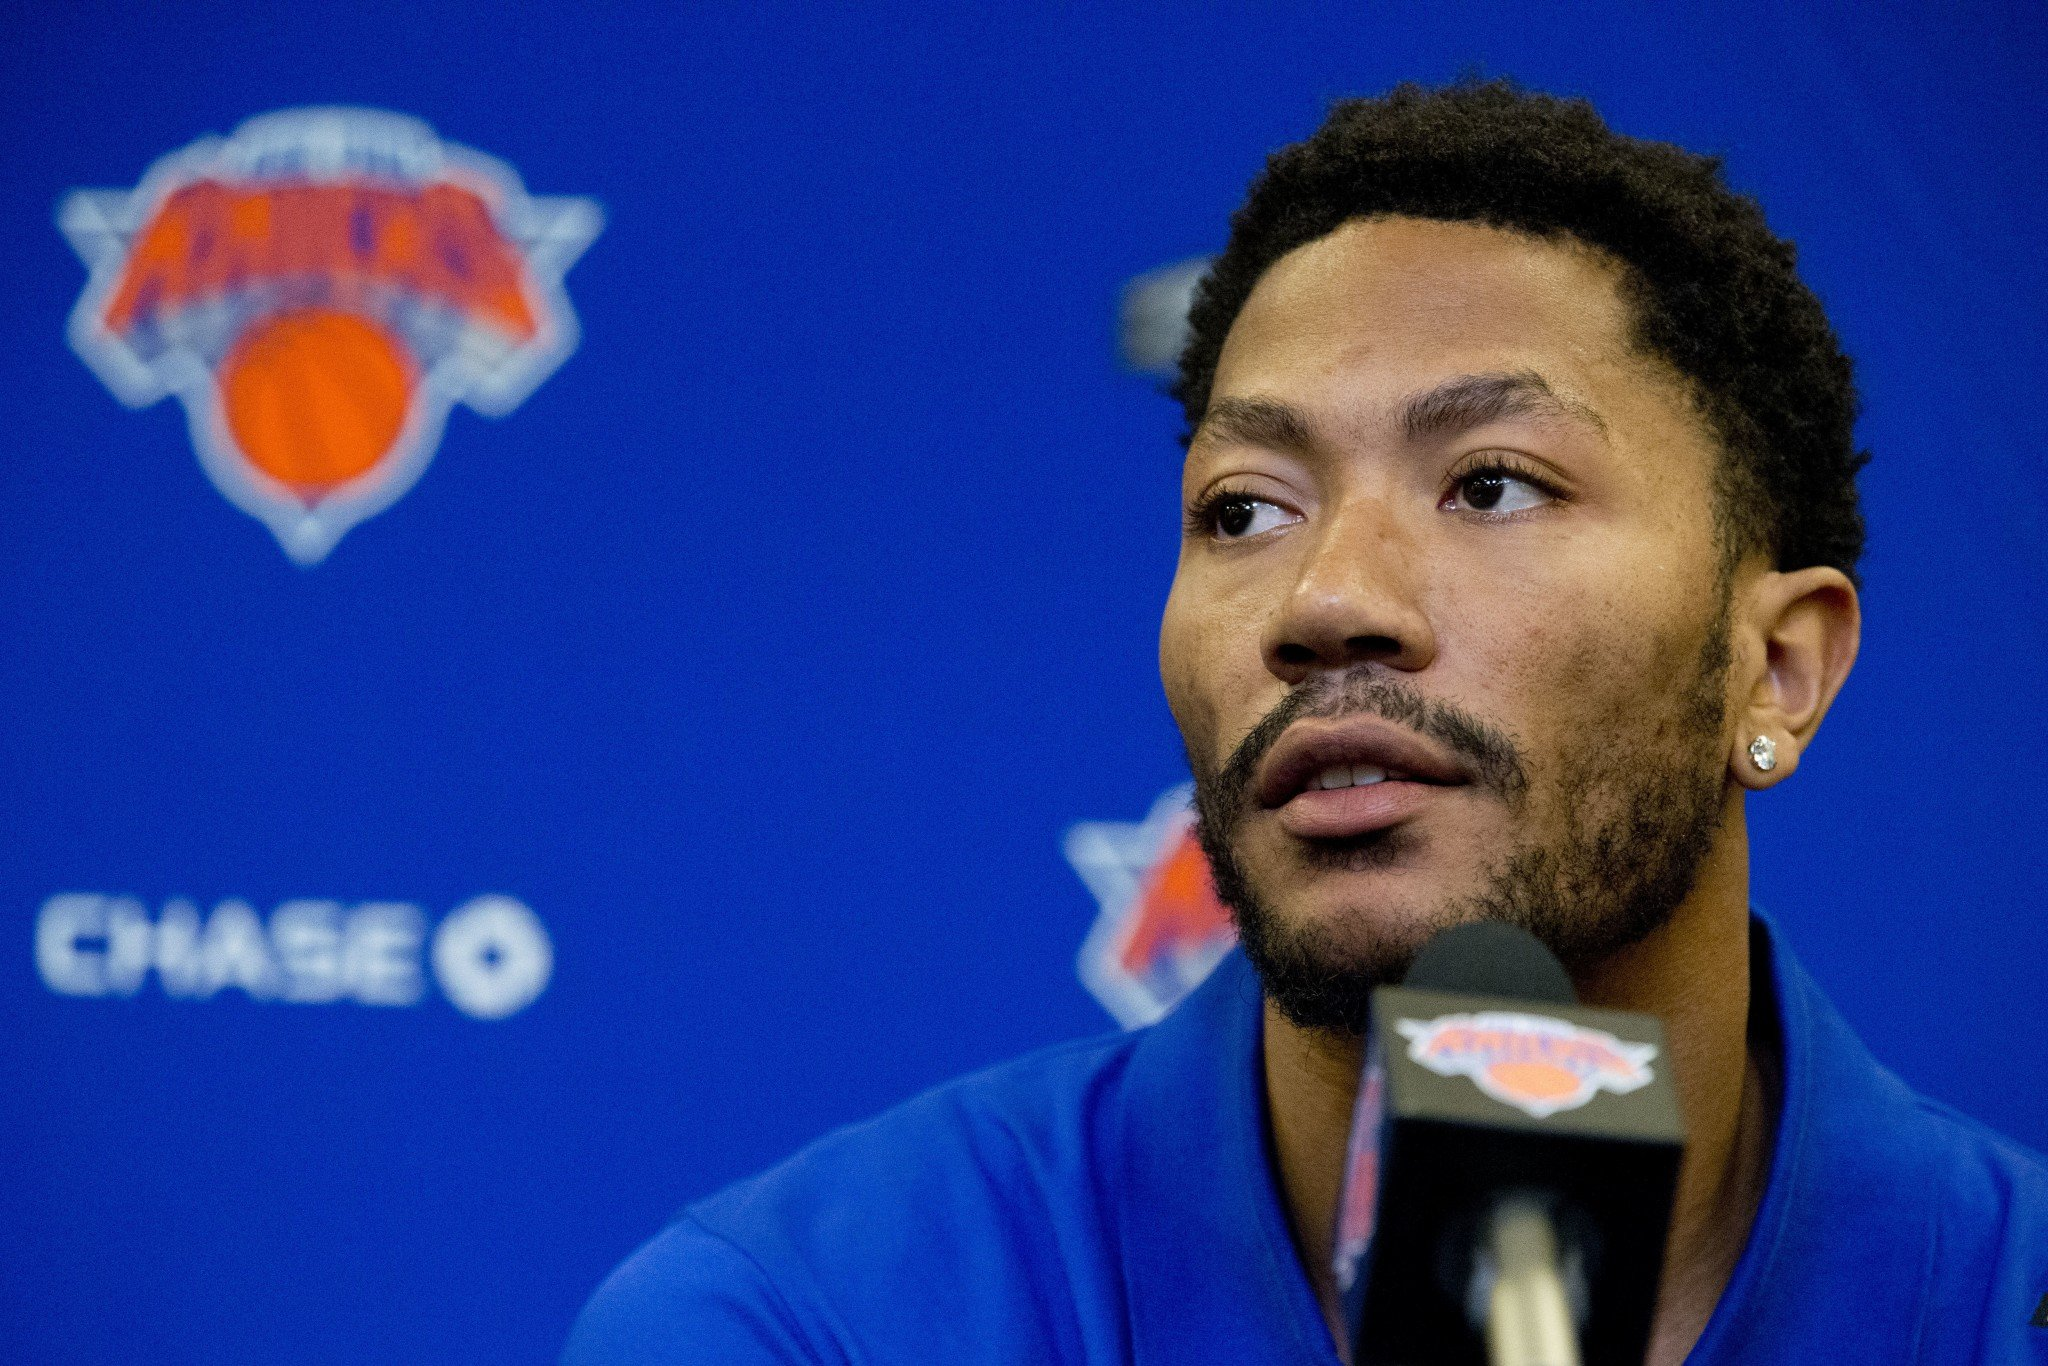 Derrick Rose speaks during a June 24, 2016, news conference at Madison Square Garden in New York. (AP)